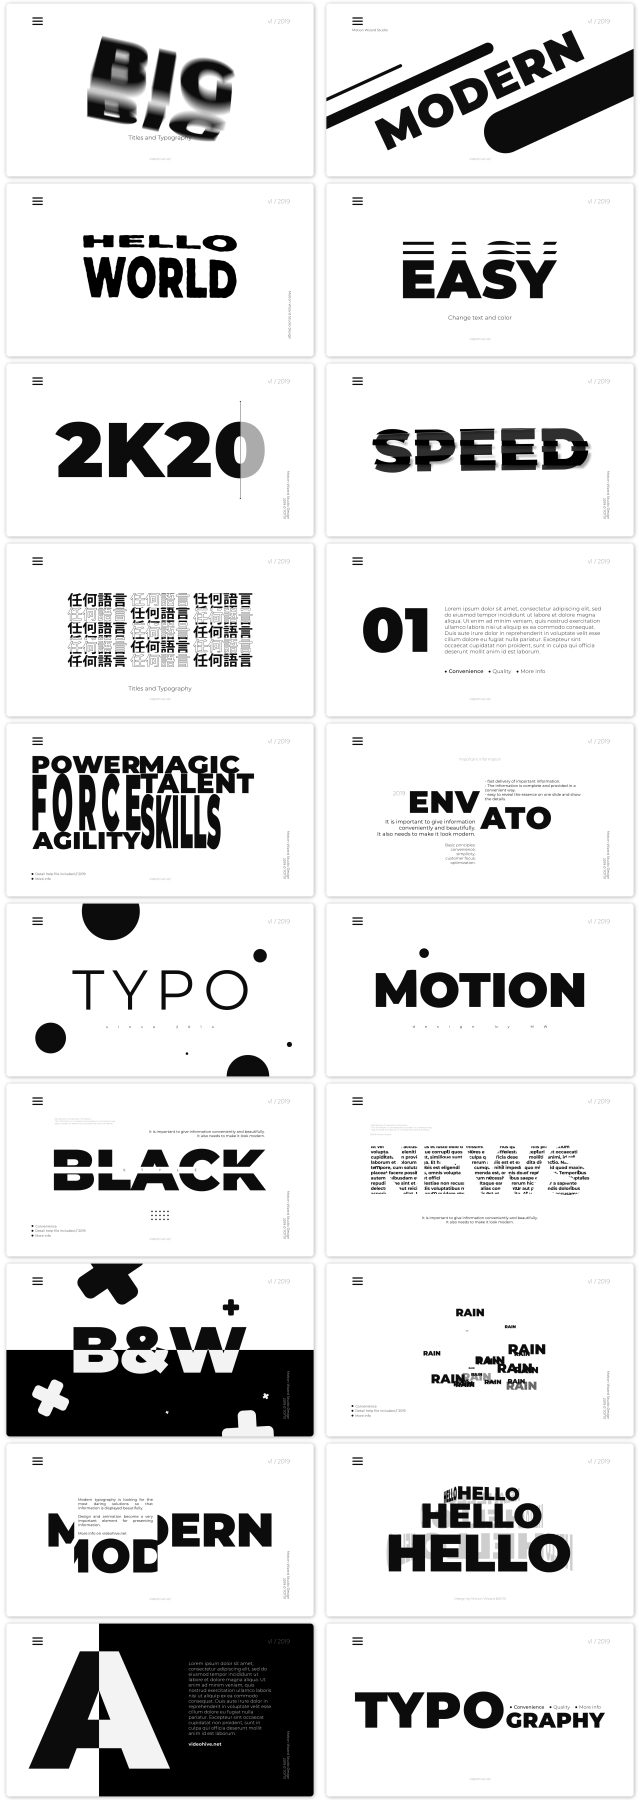 Big Black Titles And Typography - 1